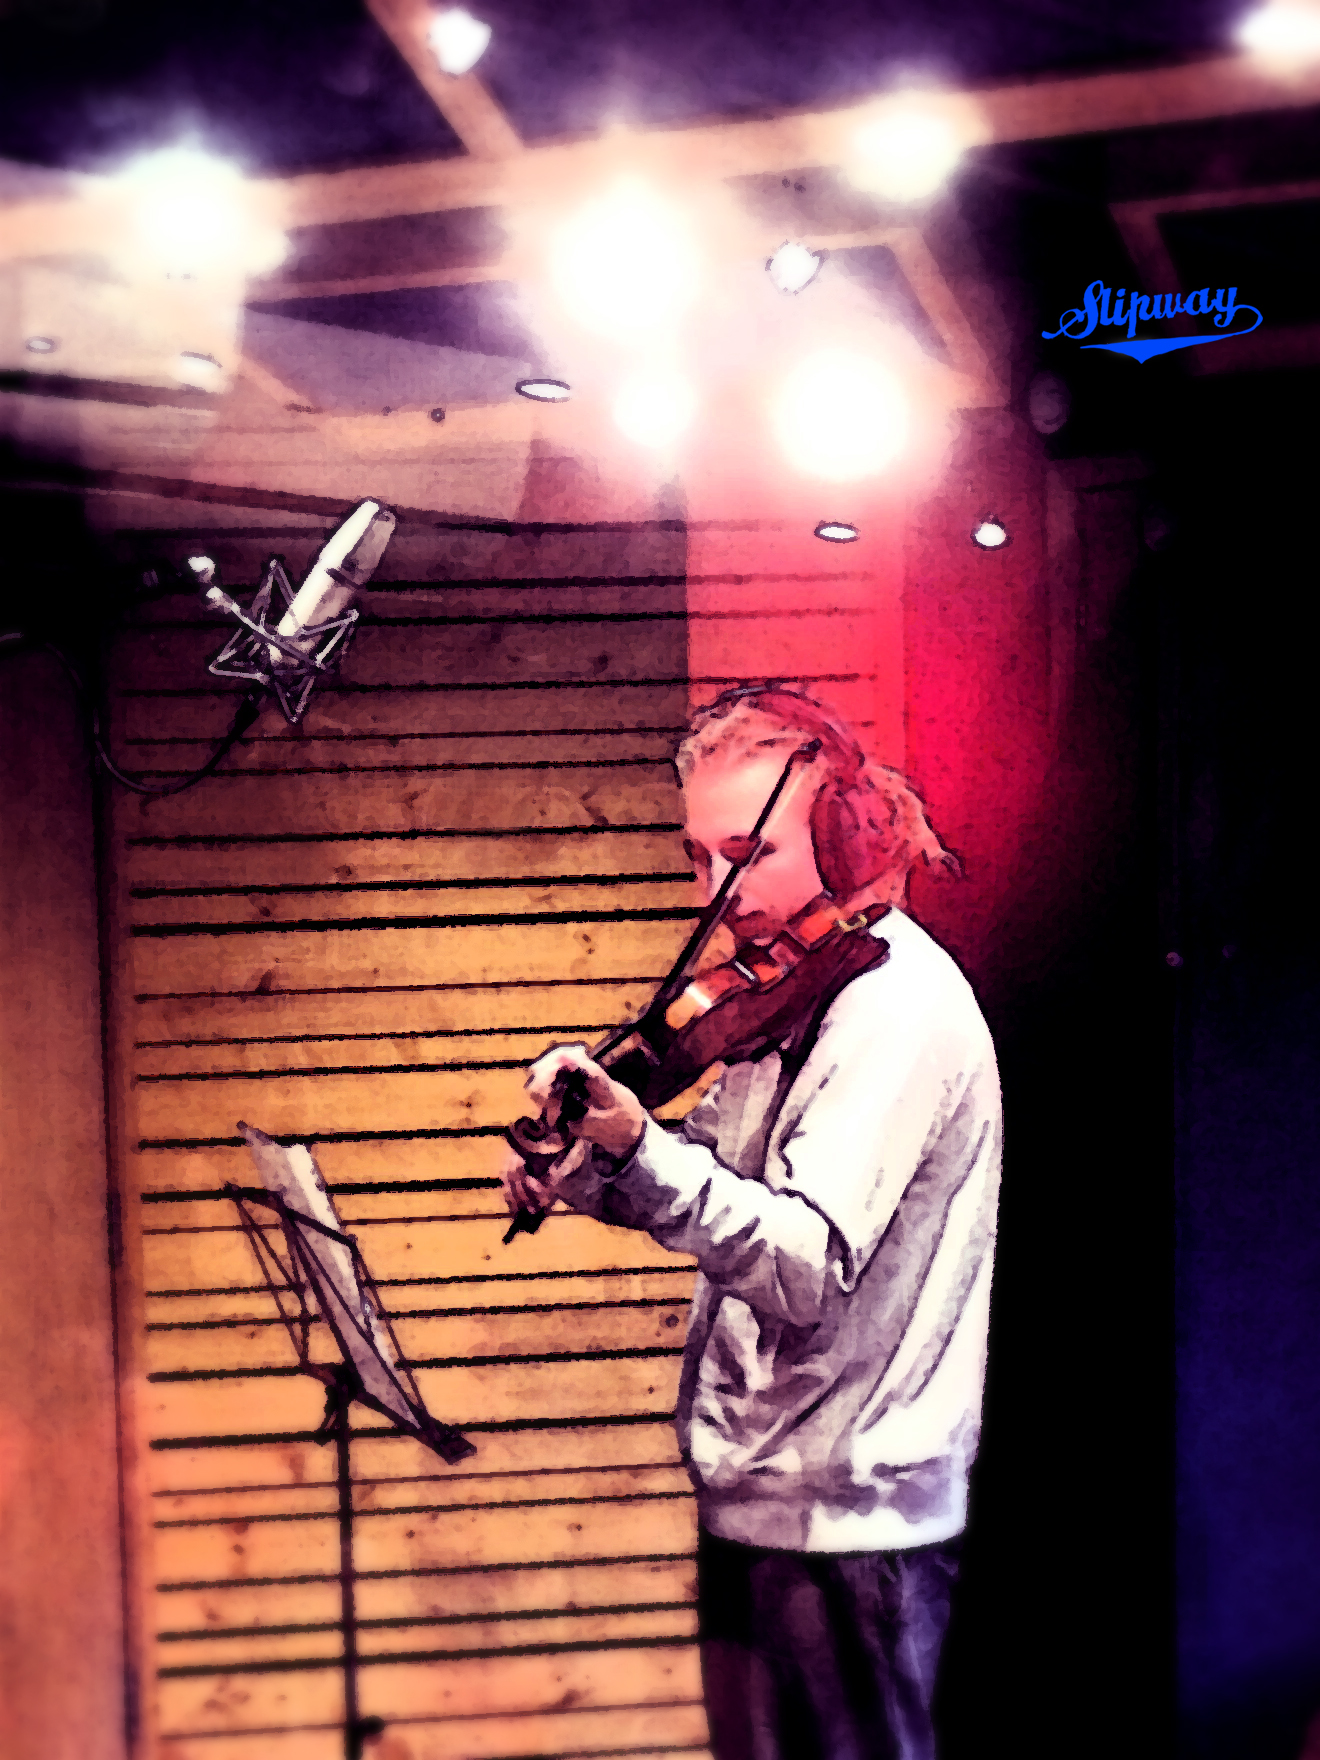 Slipway-Studio_Violin-Recording_03